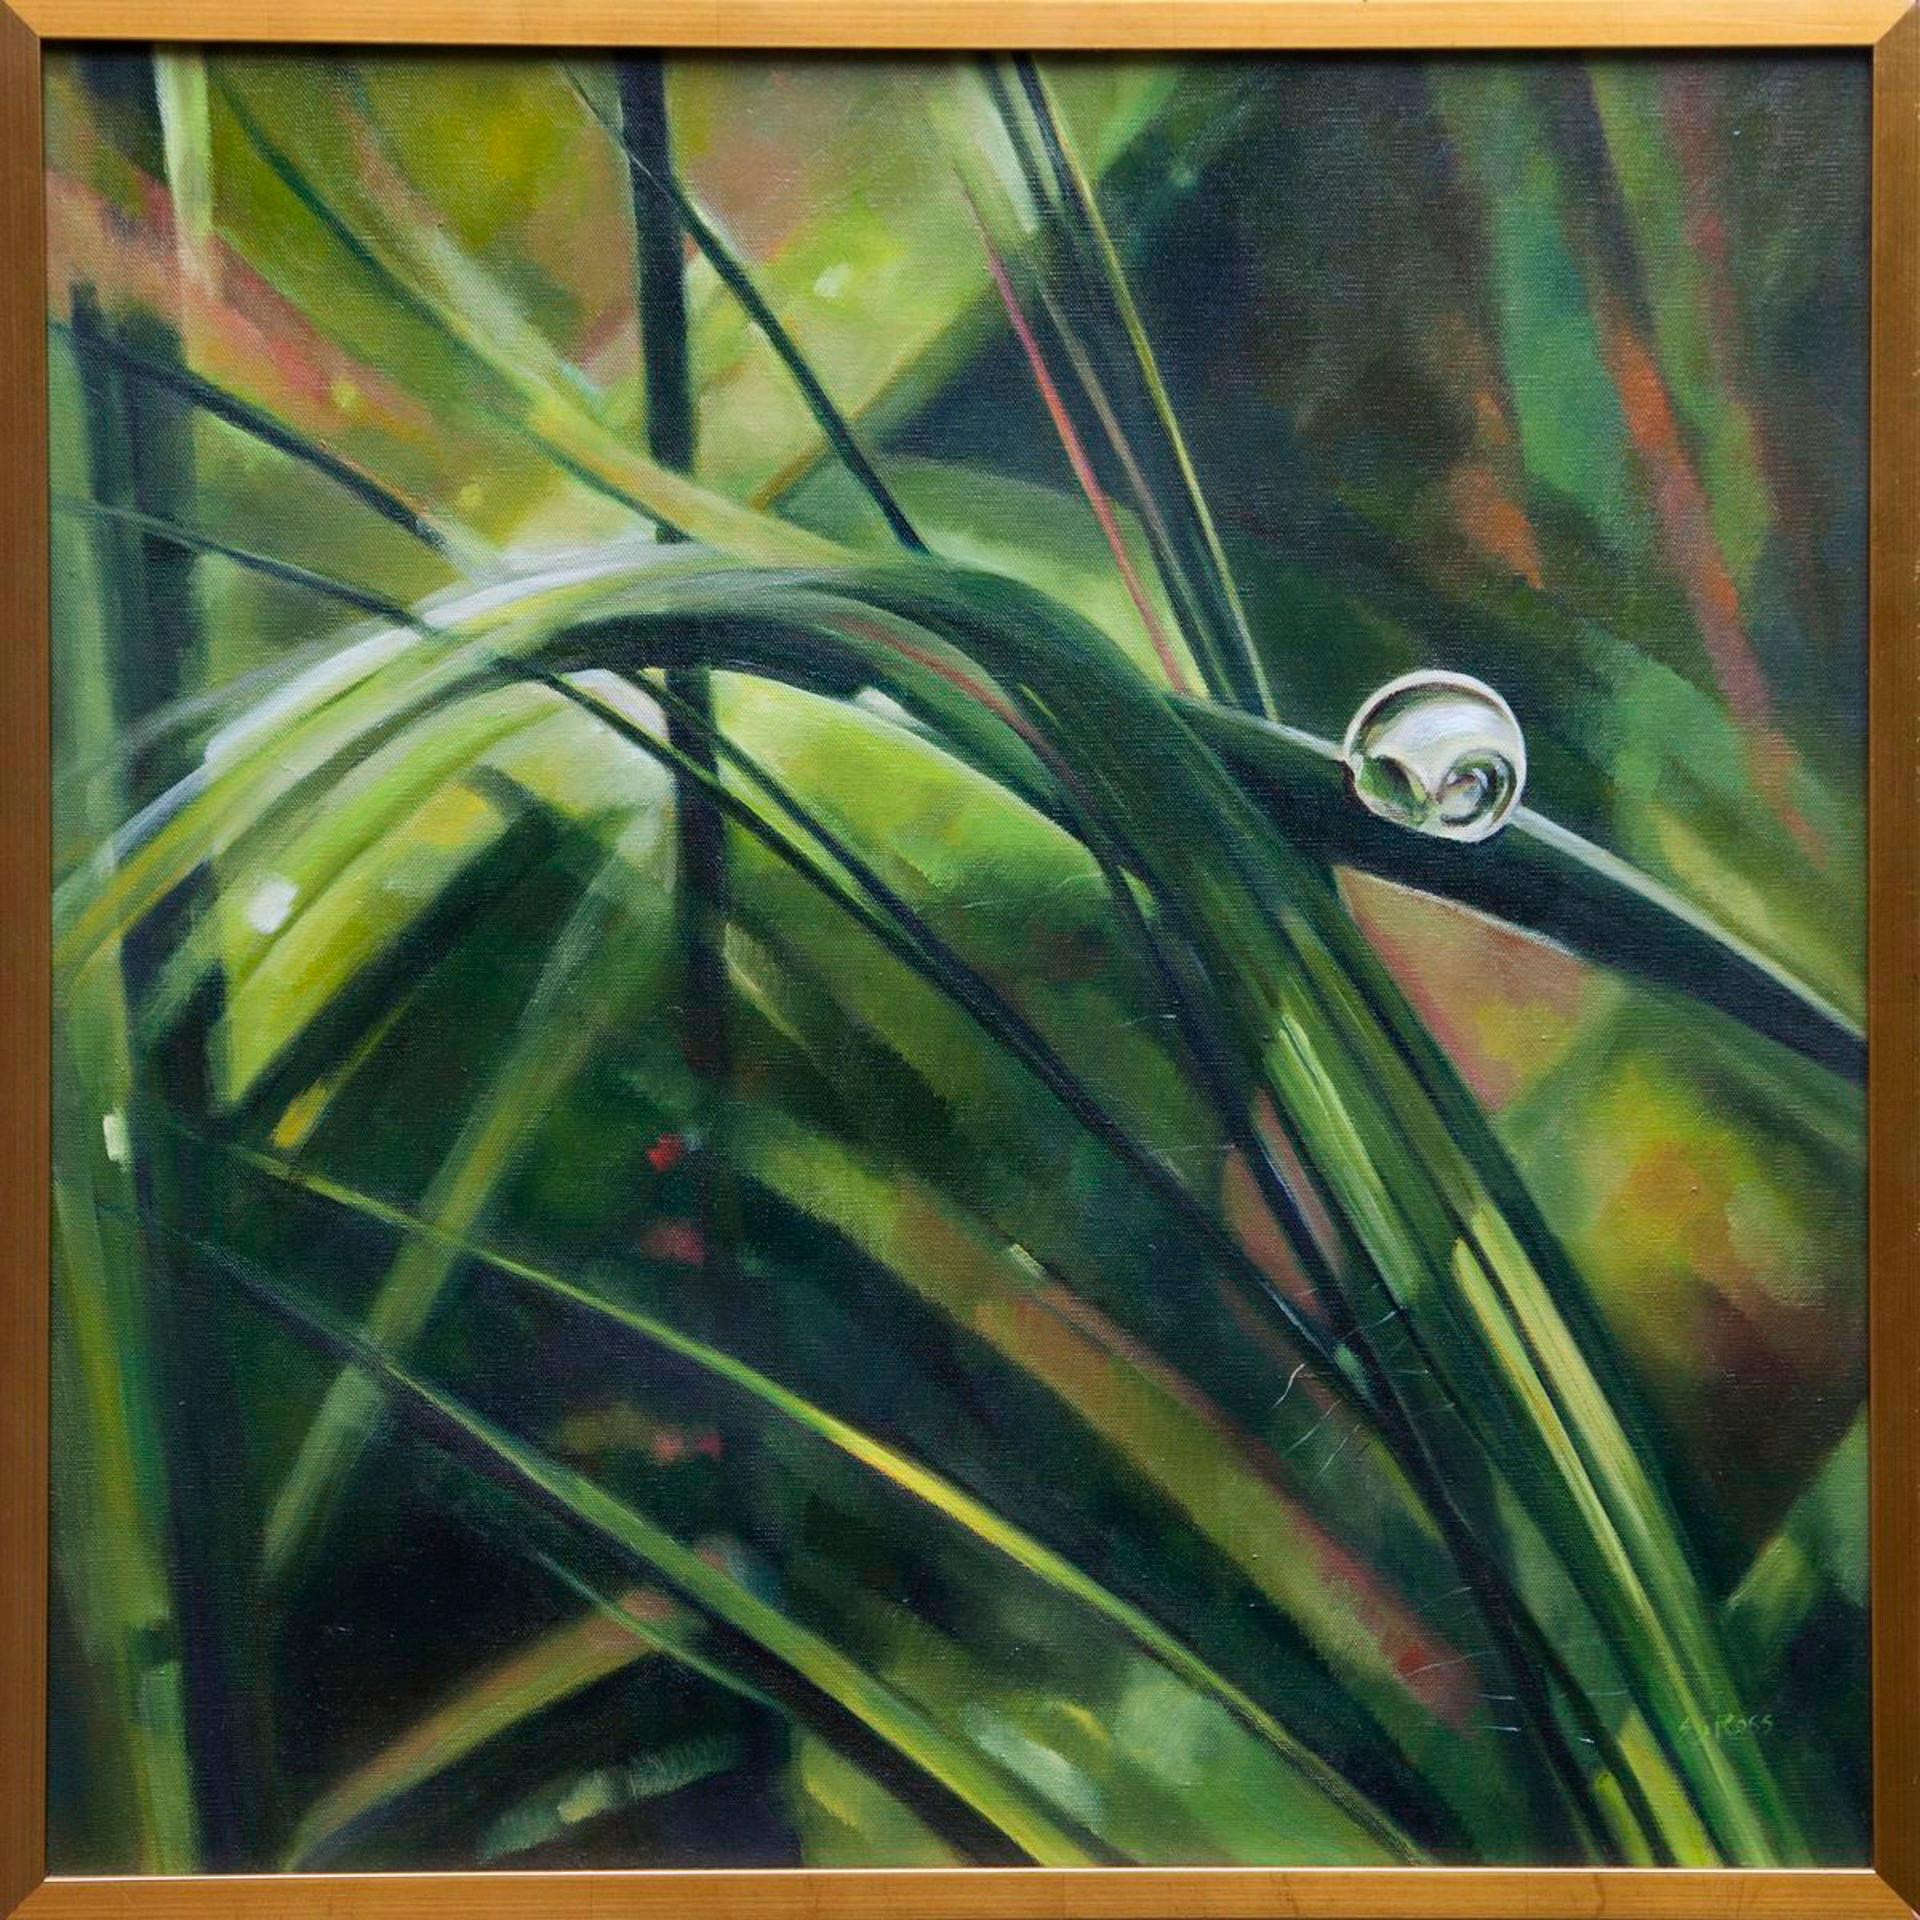 Pasture After Rain- Zoom View Nature Still Life Painting, Oil on Canvas in Frame